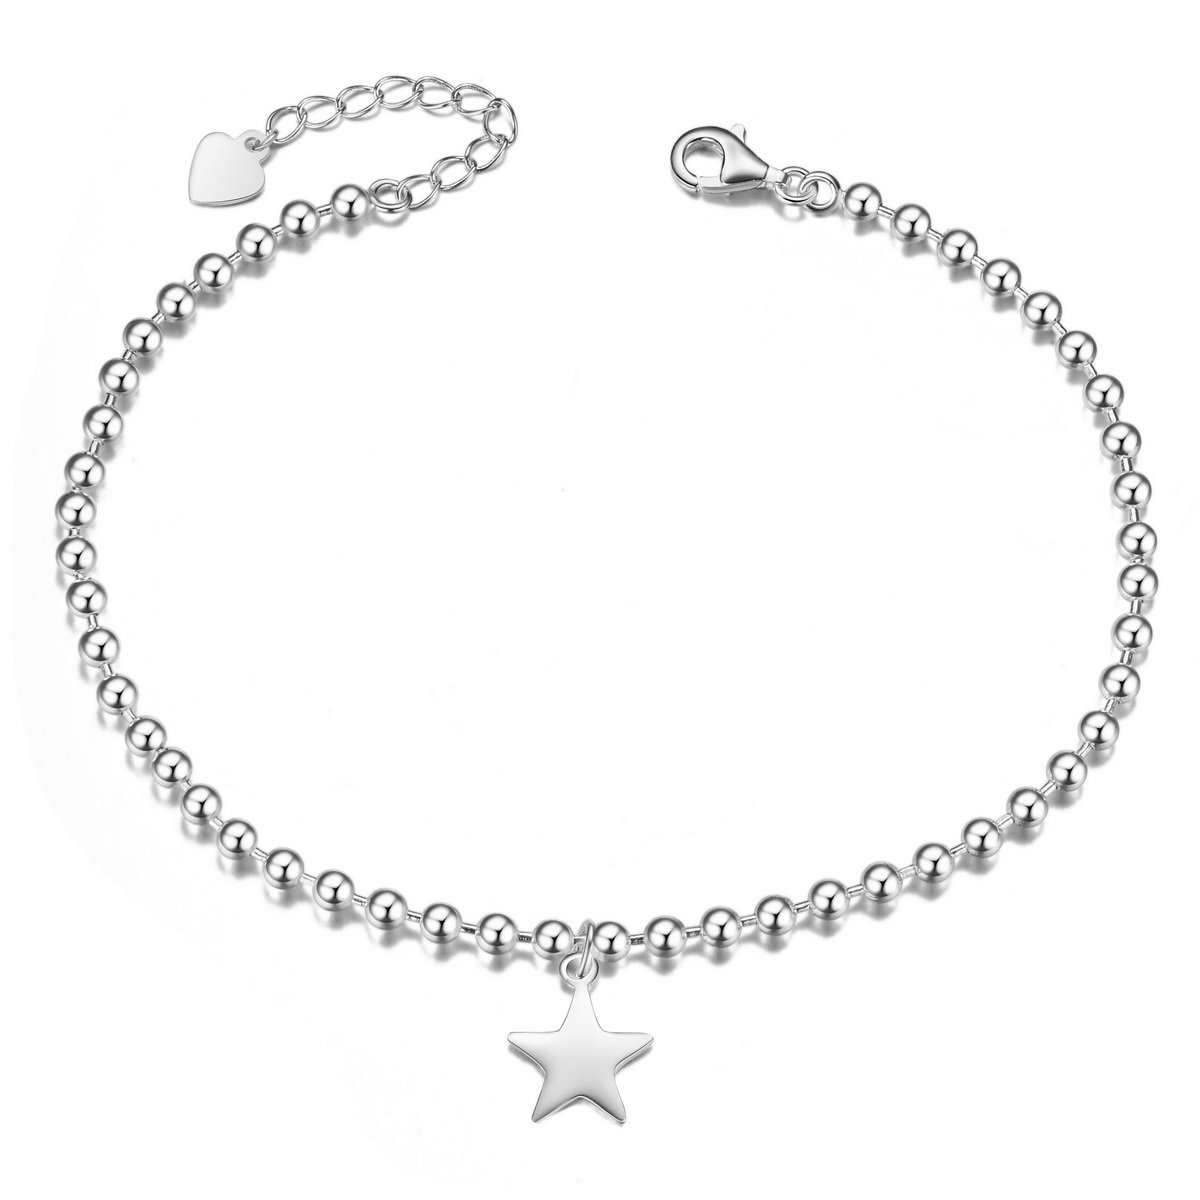 SHEGRACE 925 Sterling Silver Anklet Bracelet with Small Beads and Star Dangle Platinum 230mm JA72A